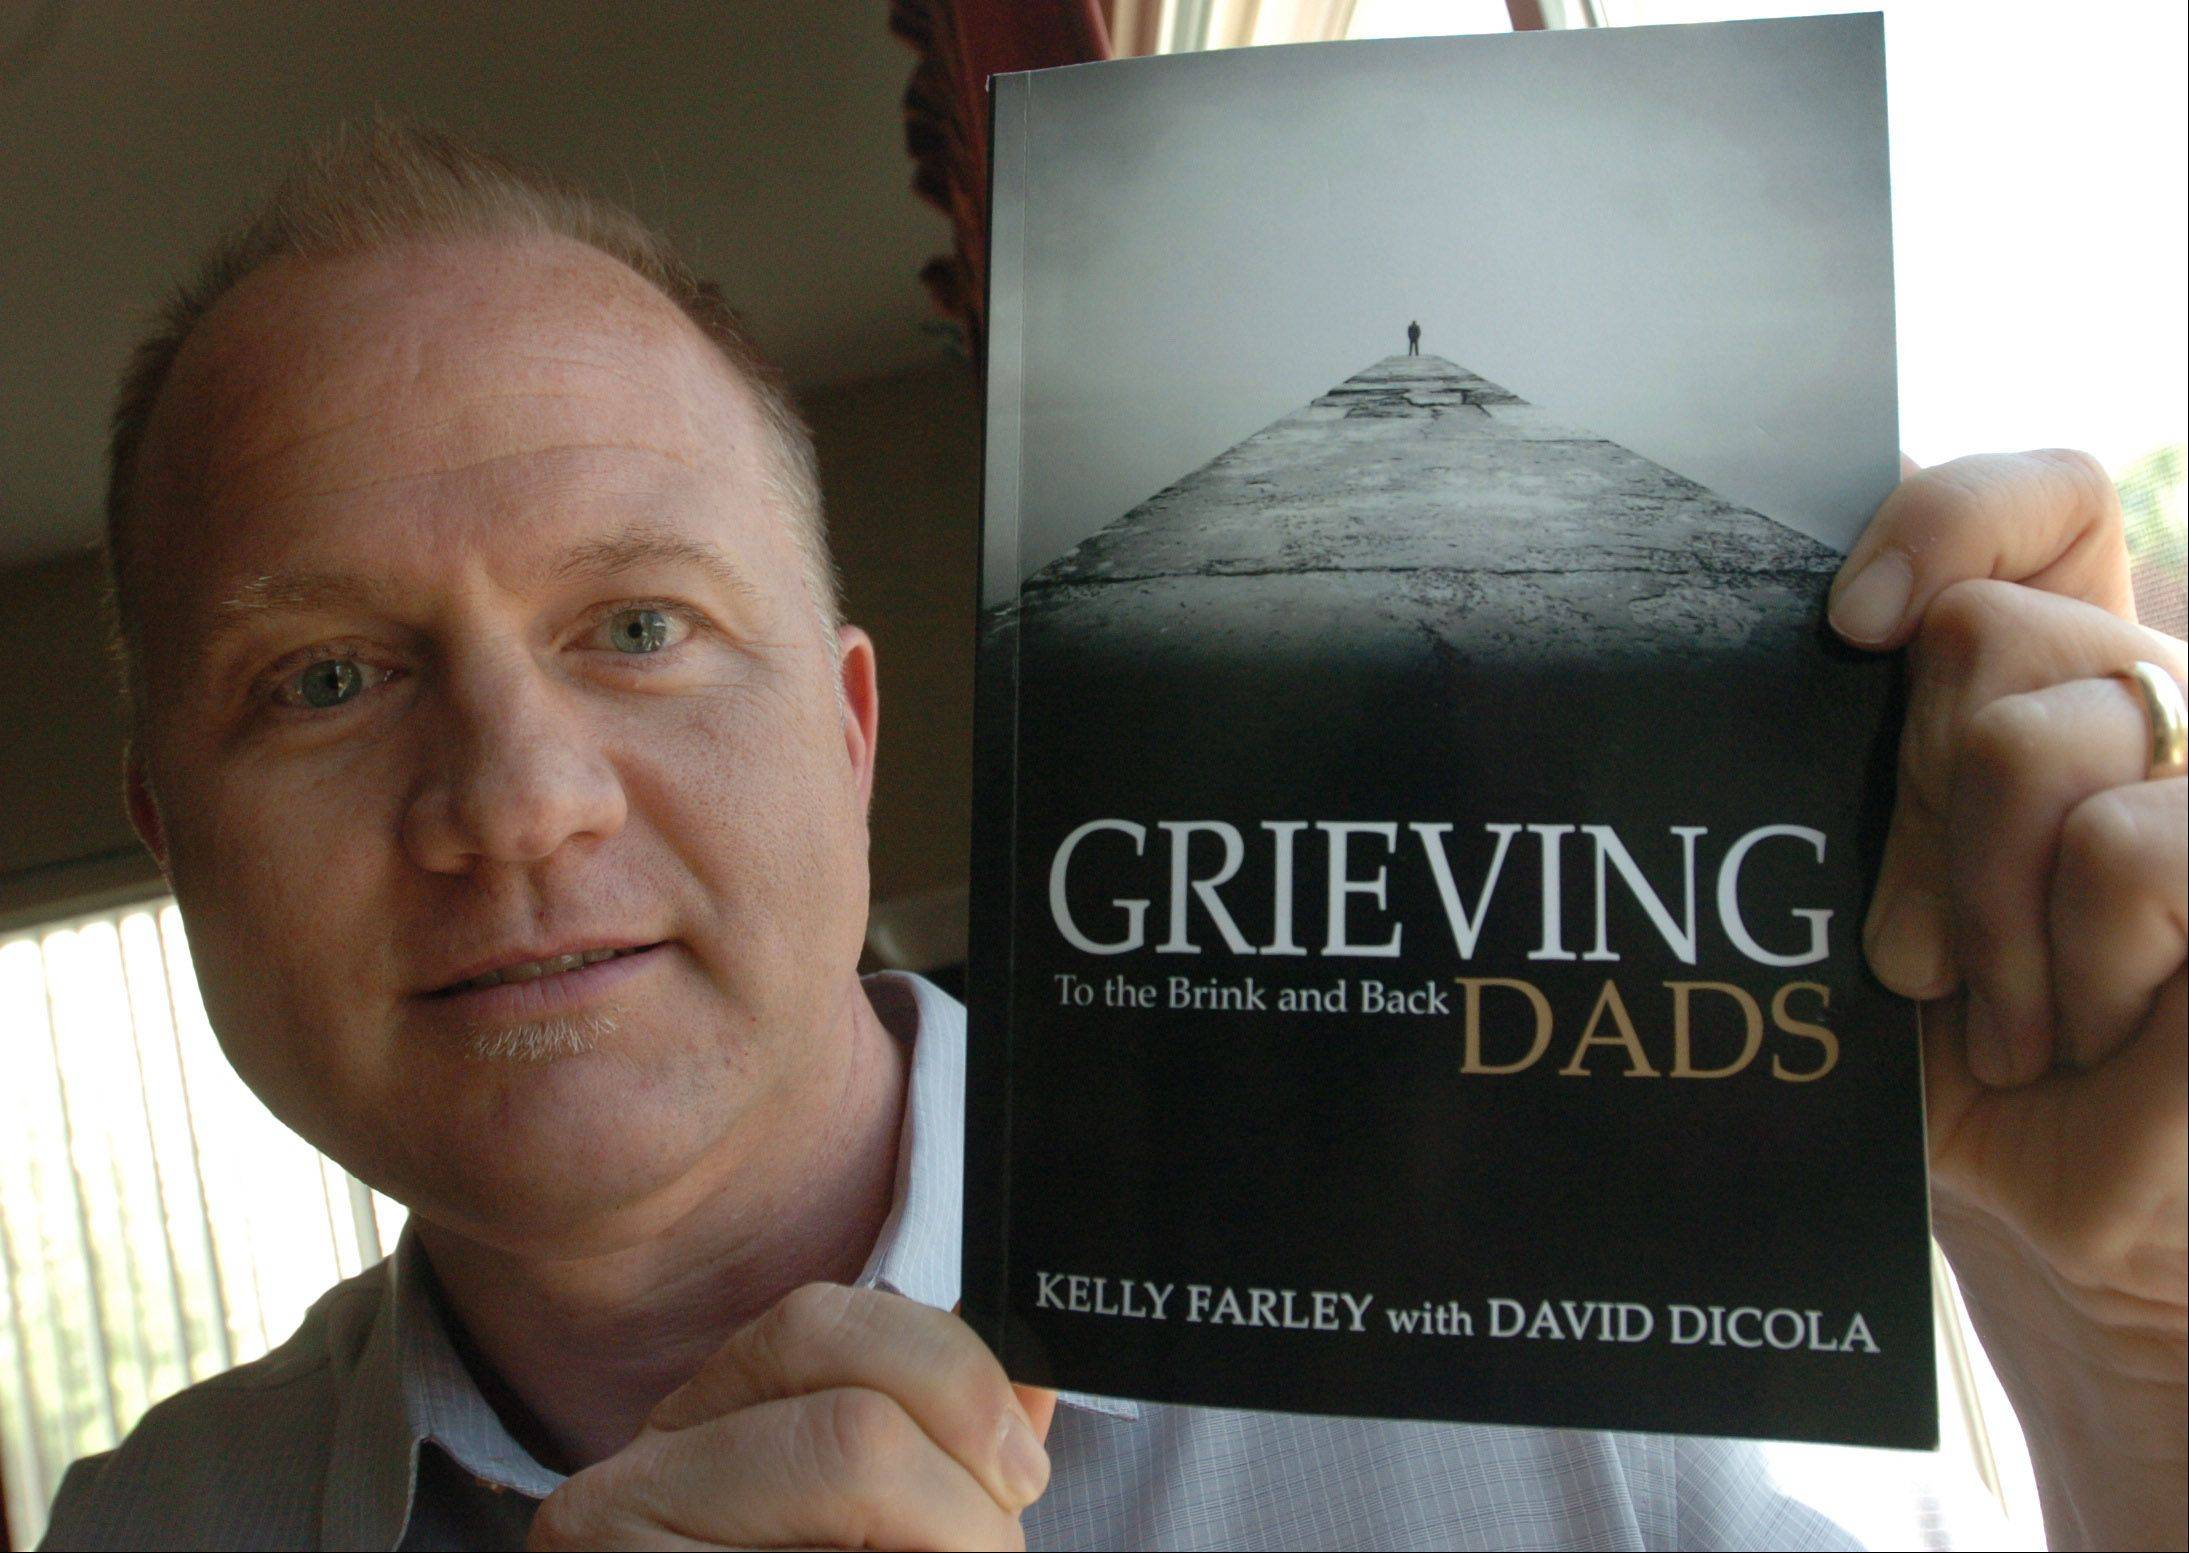 Kelly Farley of Aurora has been an advocate for fathers who have lost children since genetic abnormalities killed his daughter and son before their births in 2004 and 2006.